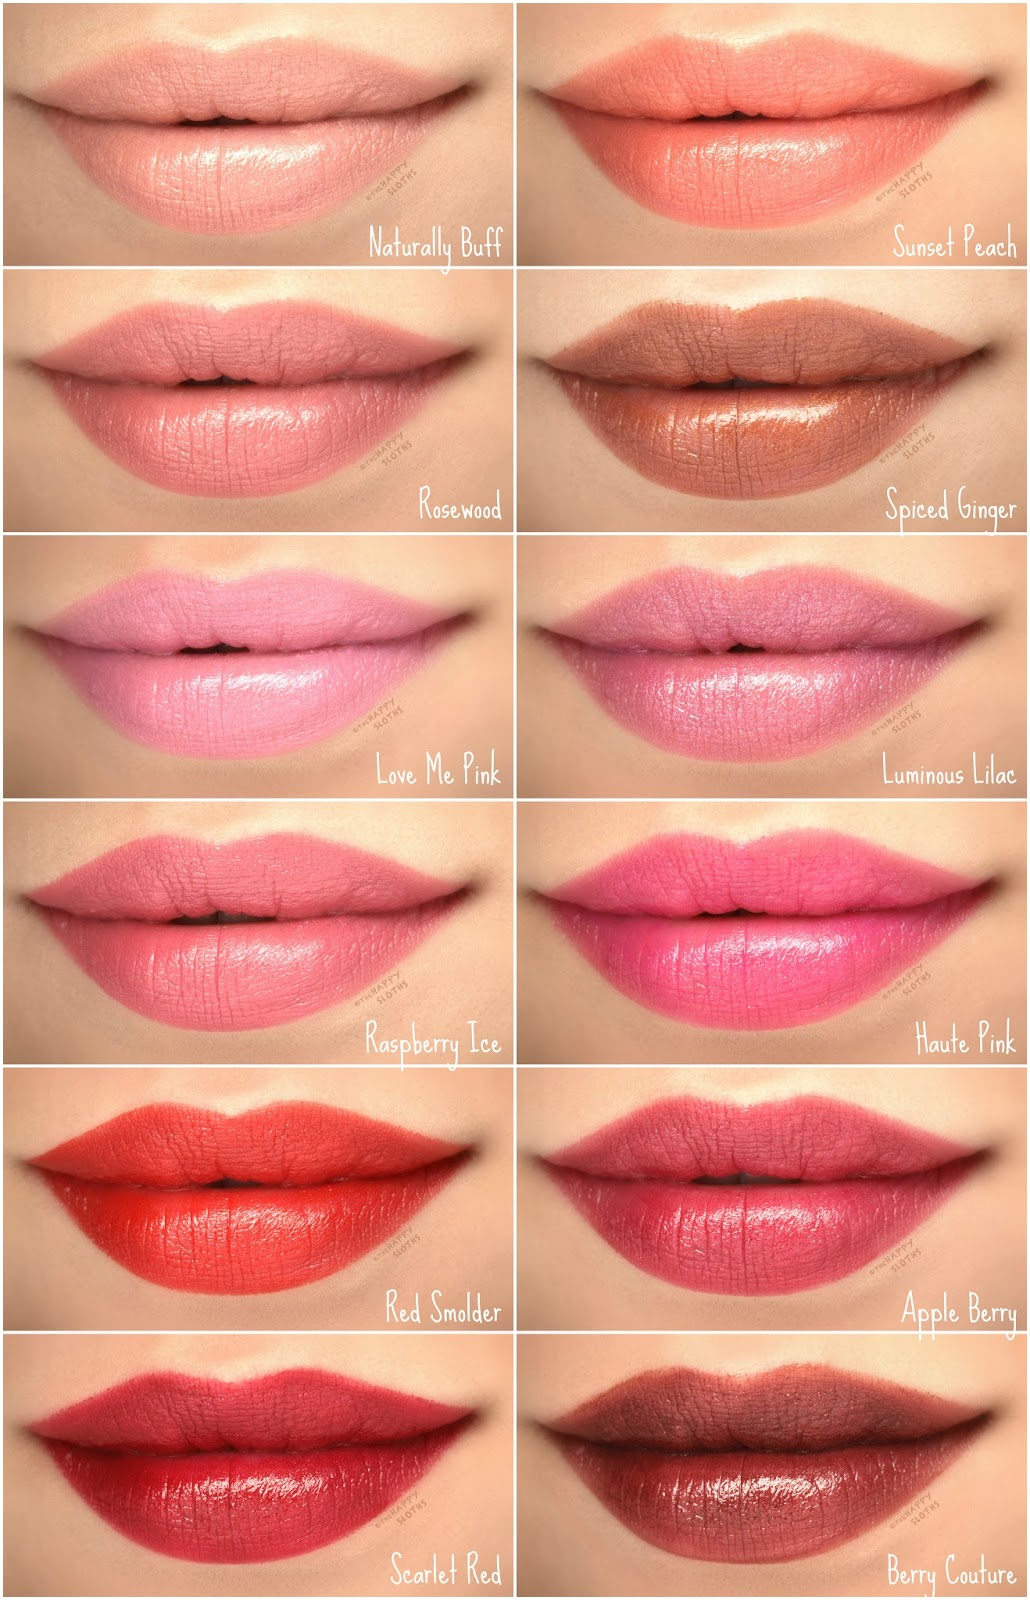 *NEW* Mary Kay Gel Semi-Shine Lipstick: Review and Swatches